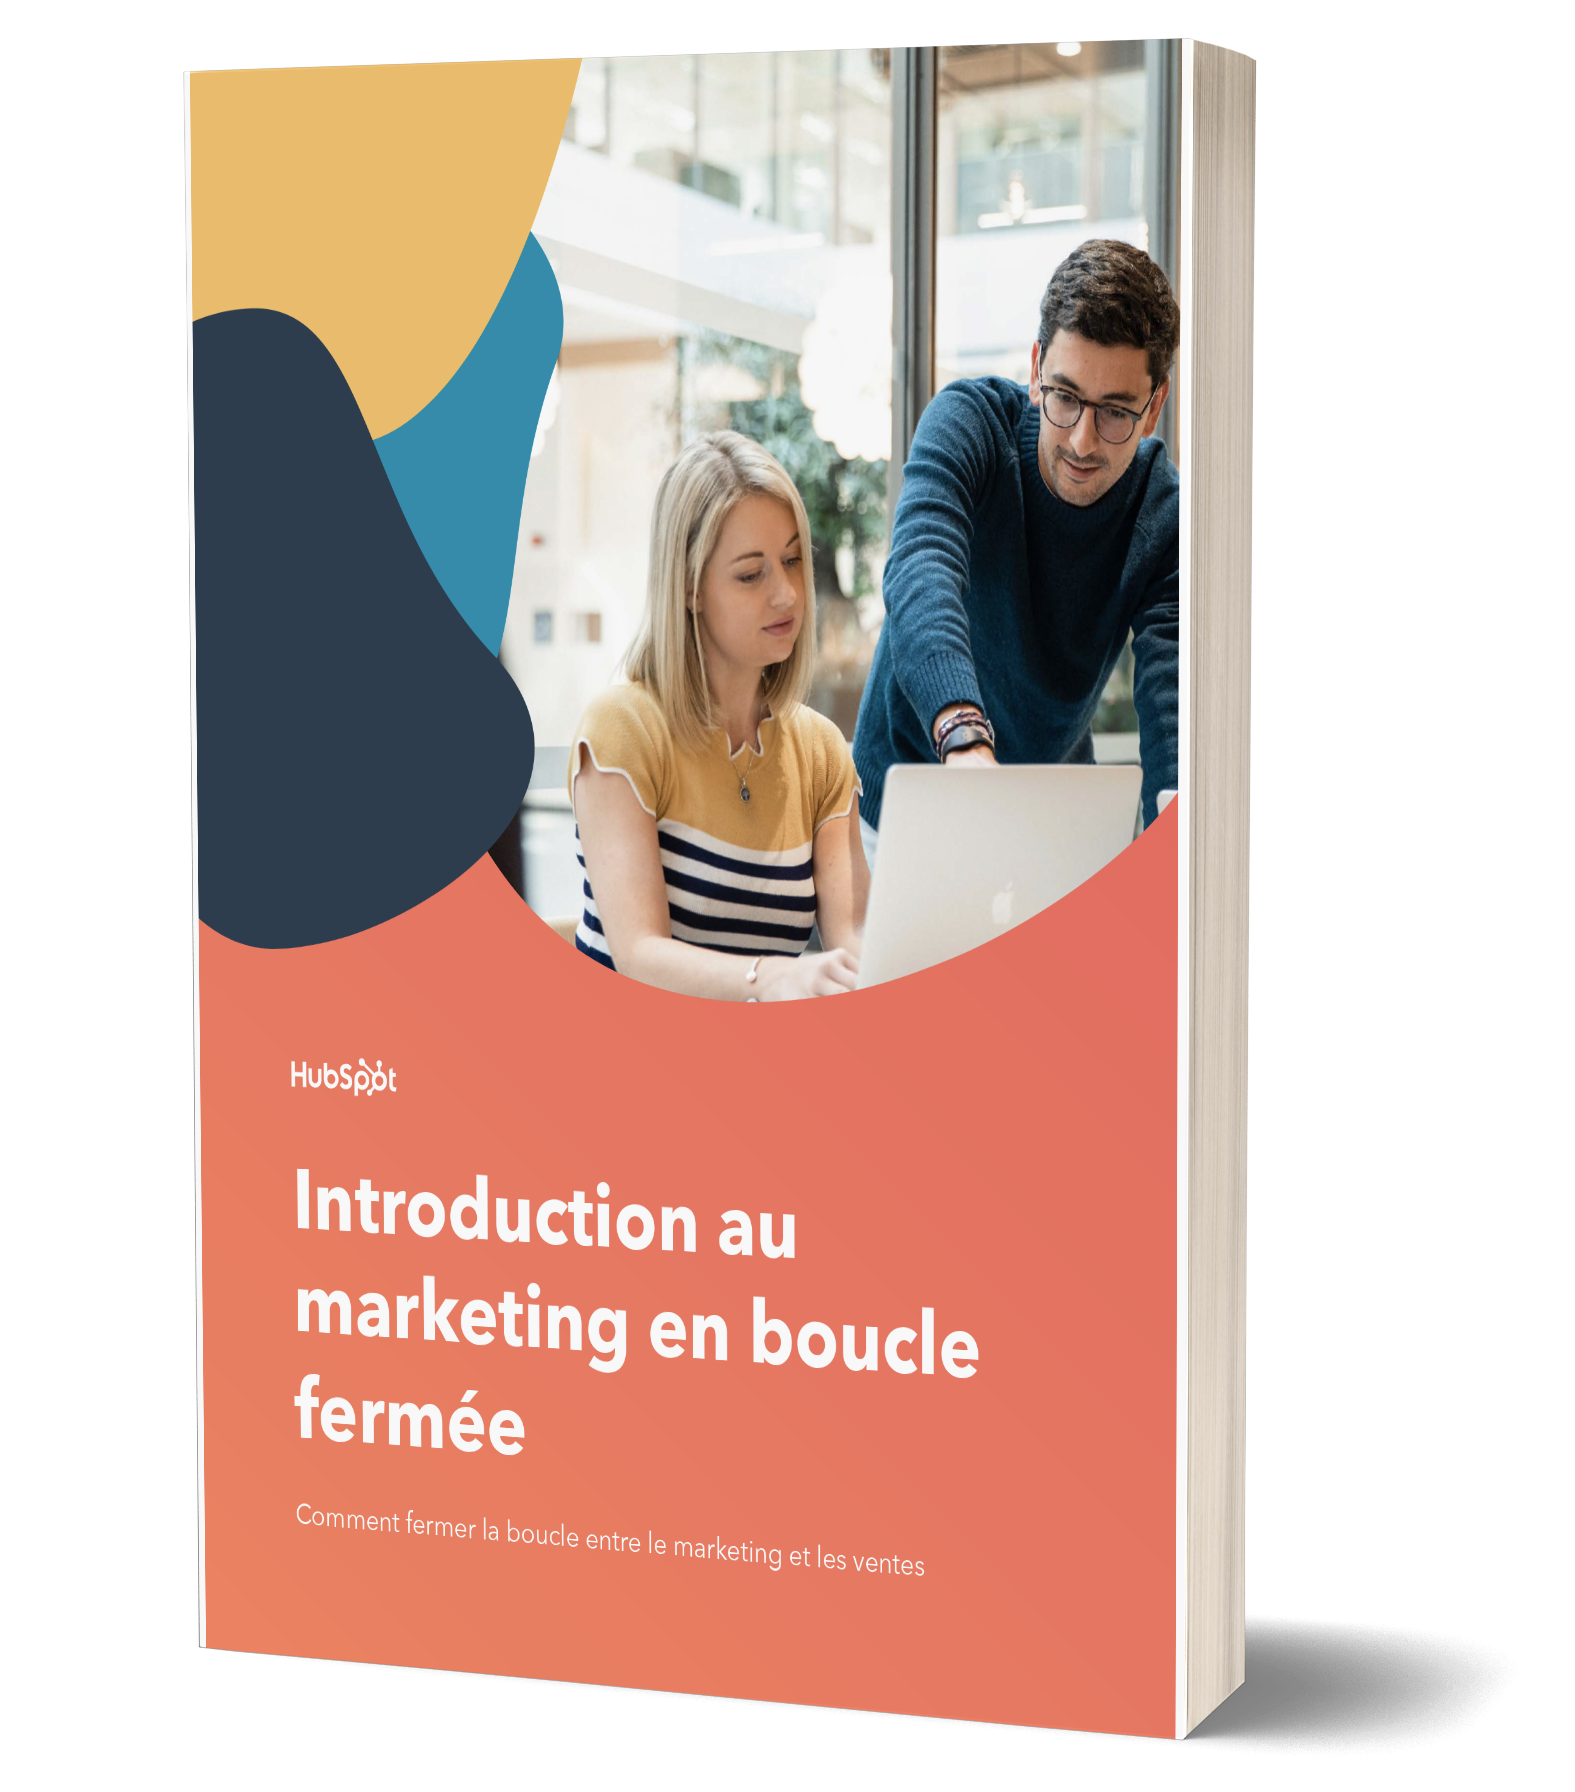 Mockup-marketing boucle fermée